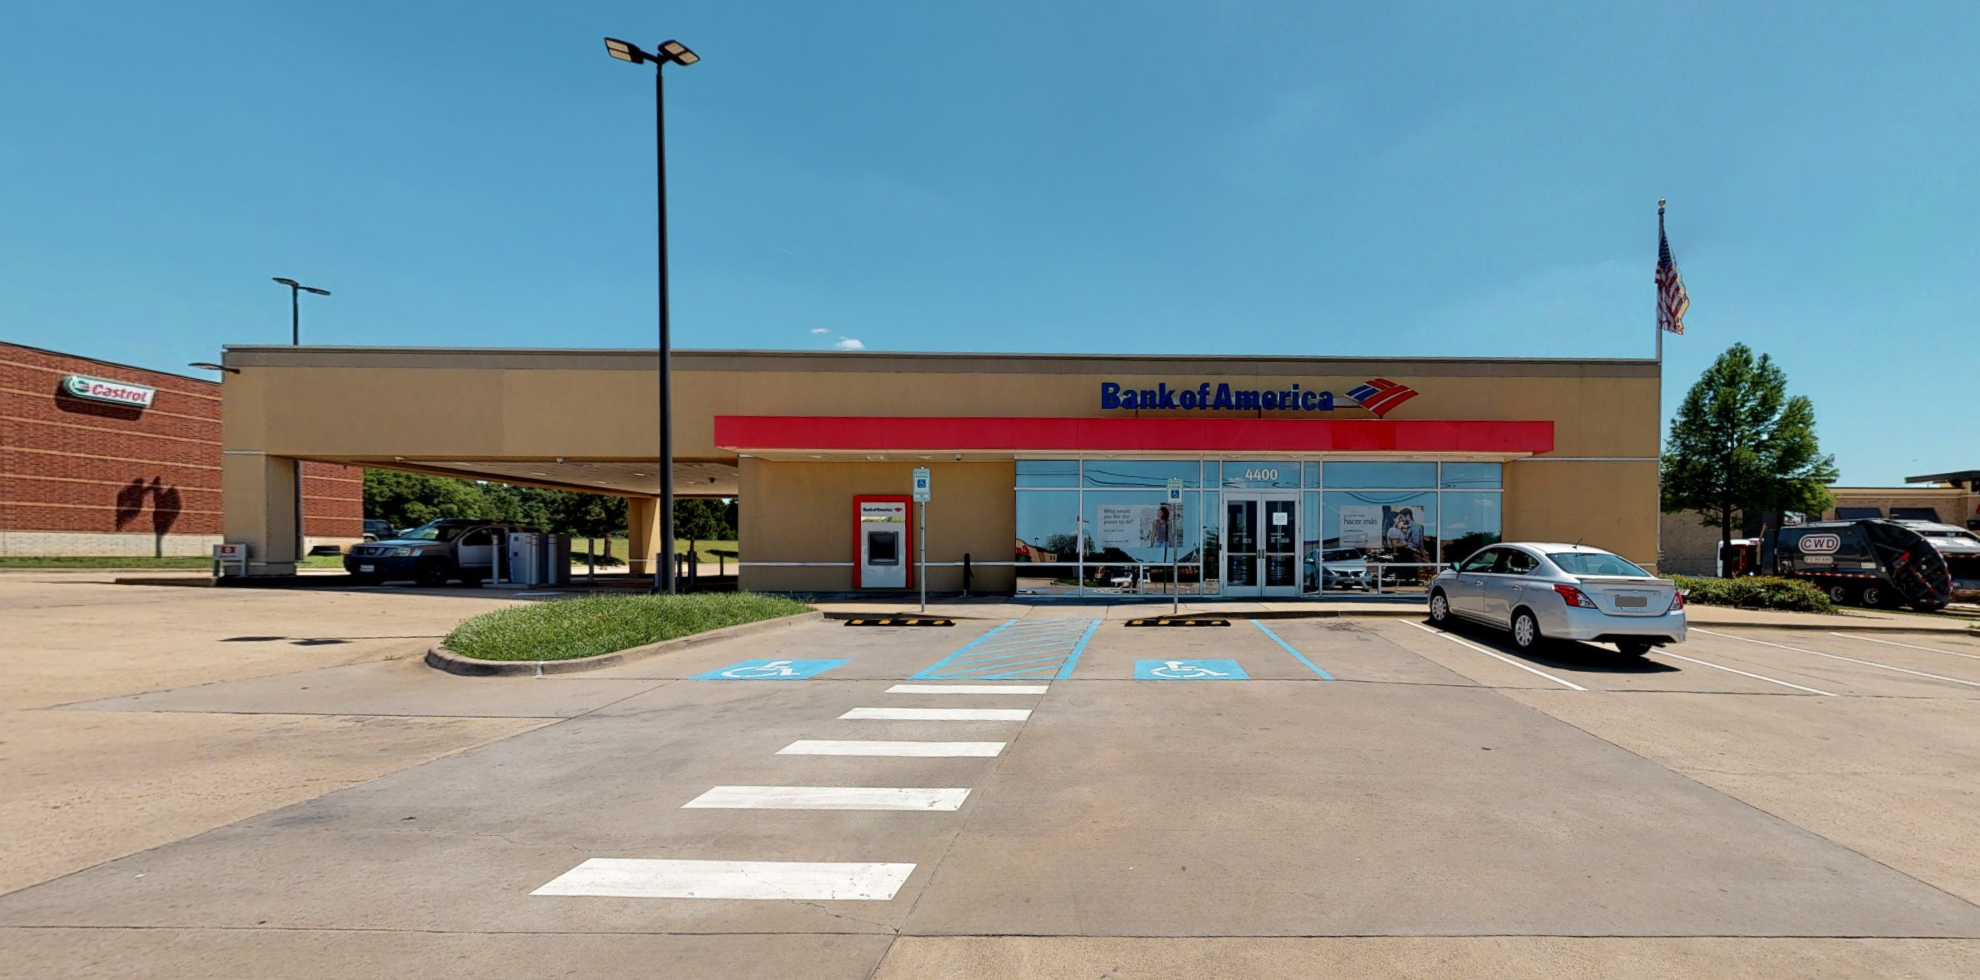 Bank of America financial center with drive-thru ATM   4400 FM 2181, Hickory Creek, TX 75065